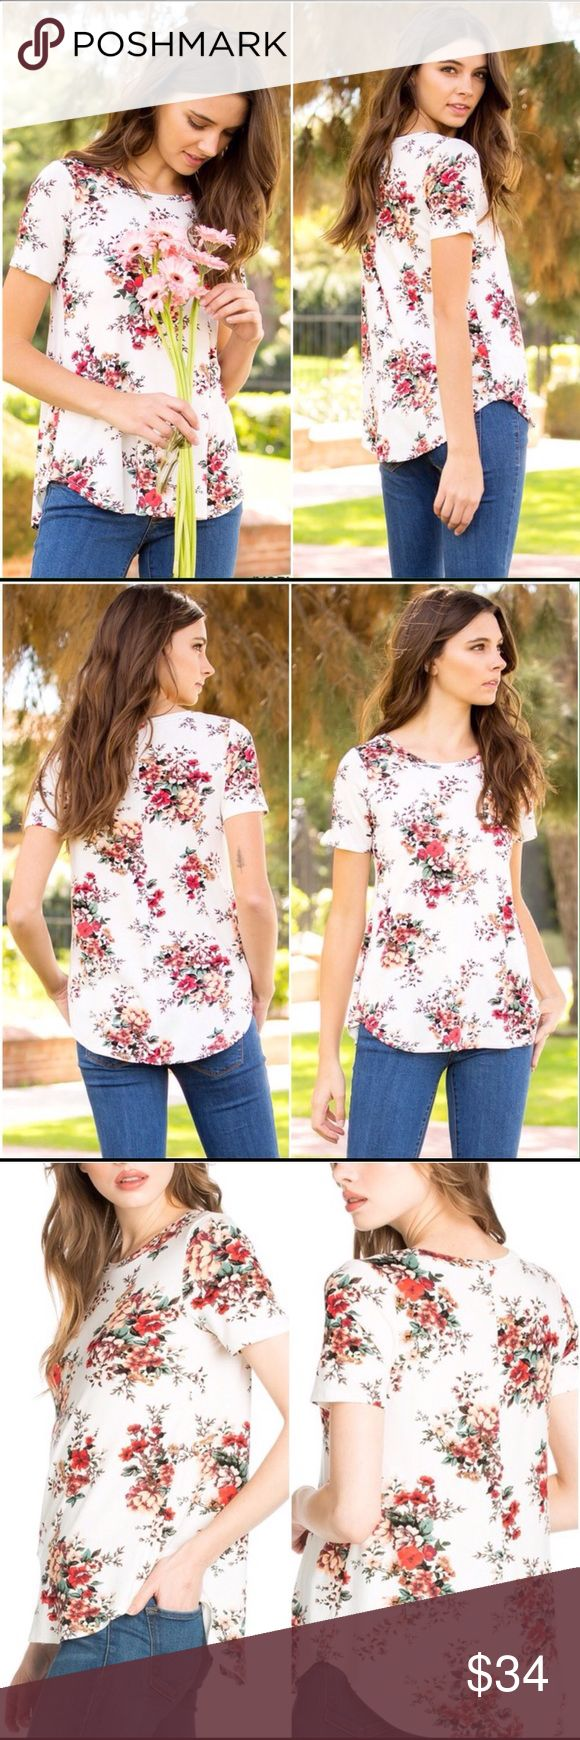 FLASH SALE! Stretch Floral Top Off white, or cream, with poppy red floral print, shirt tail hem, a slight high low hem, round neckline, short sleeves, 95% rayon, 5% spandex. High quality fabric, roomy fit. Made with Love In The USA! Tops Tees - Short Sleeve